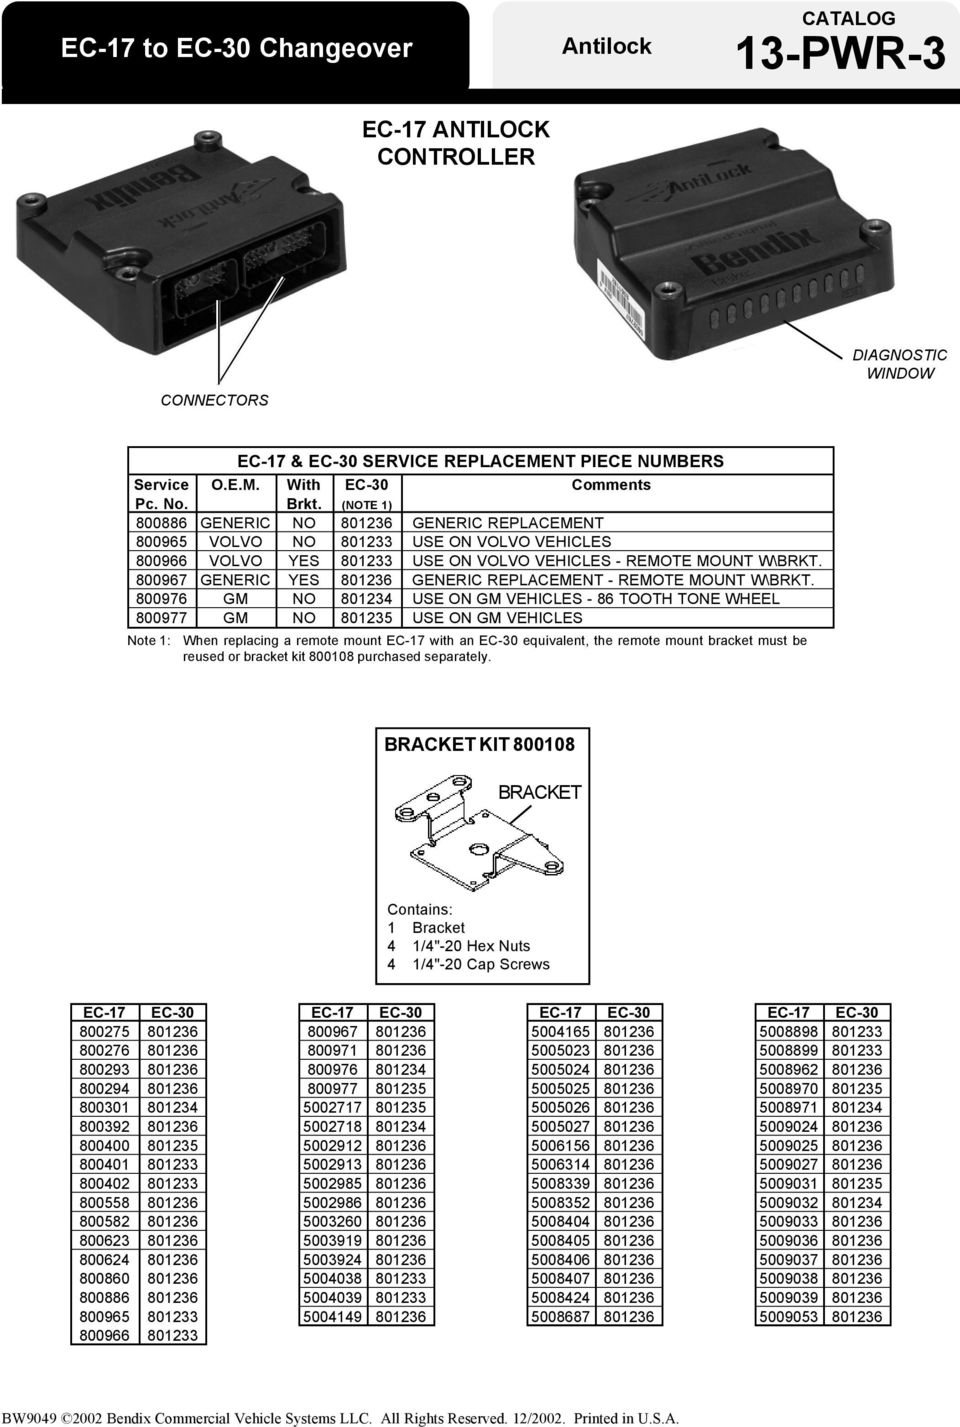 800967 GENERIC YES 801236 GENERIC REPLACEMENT - REMOTE MOUNT ...